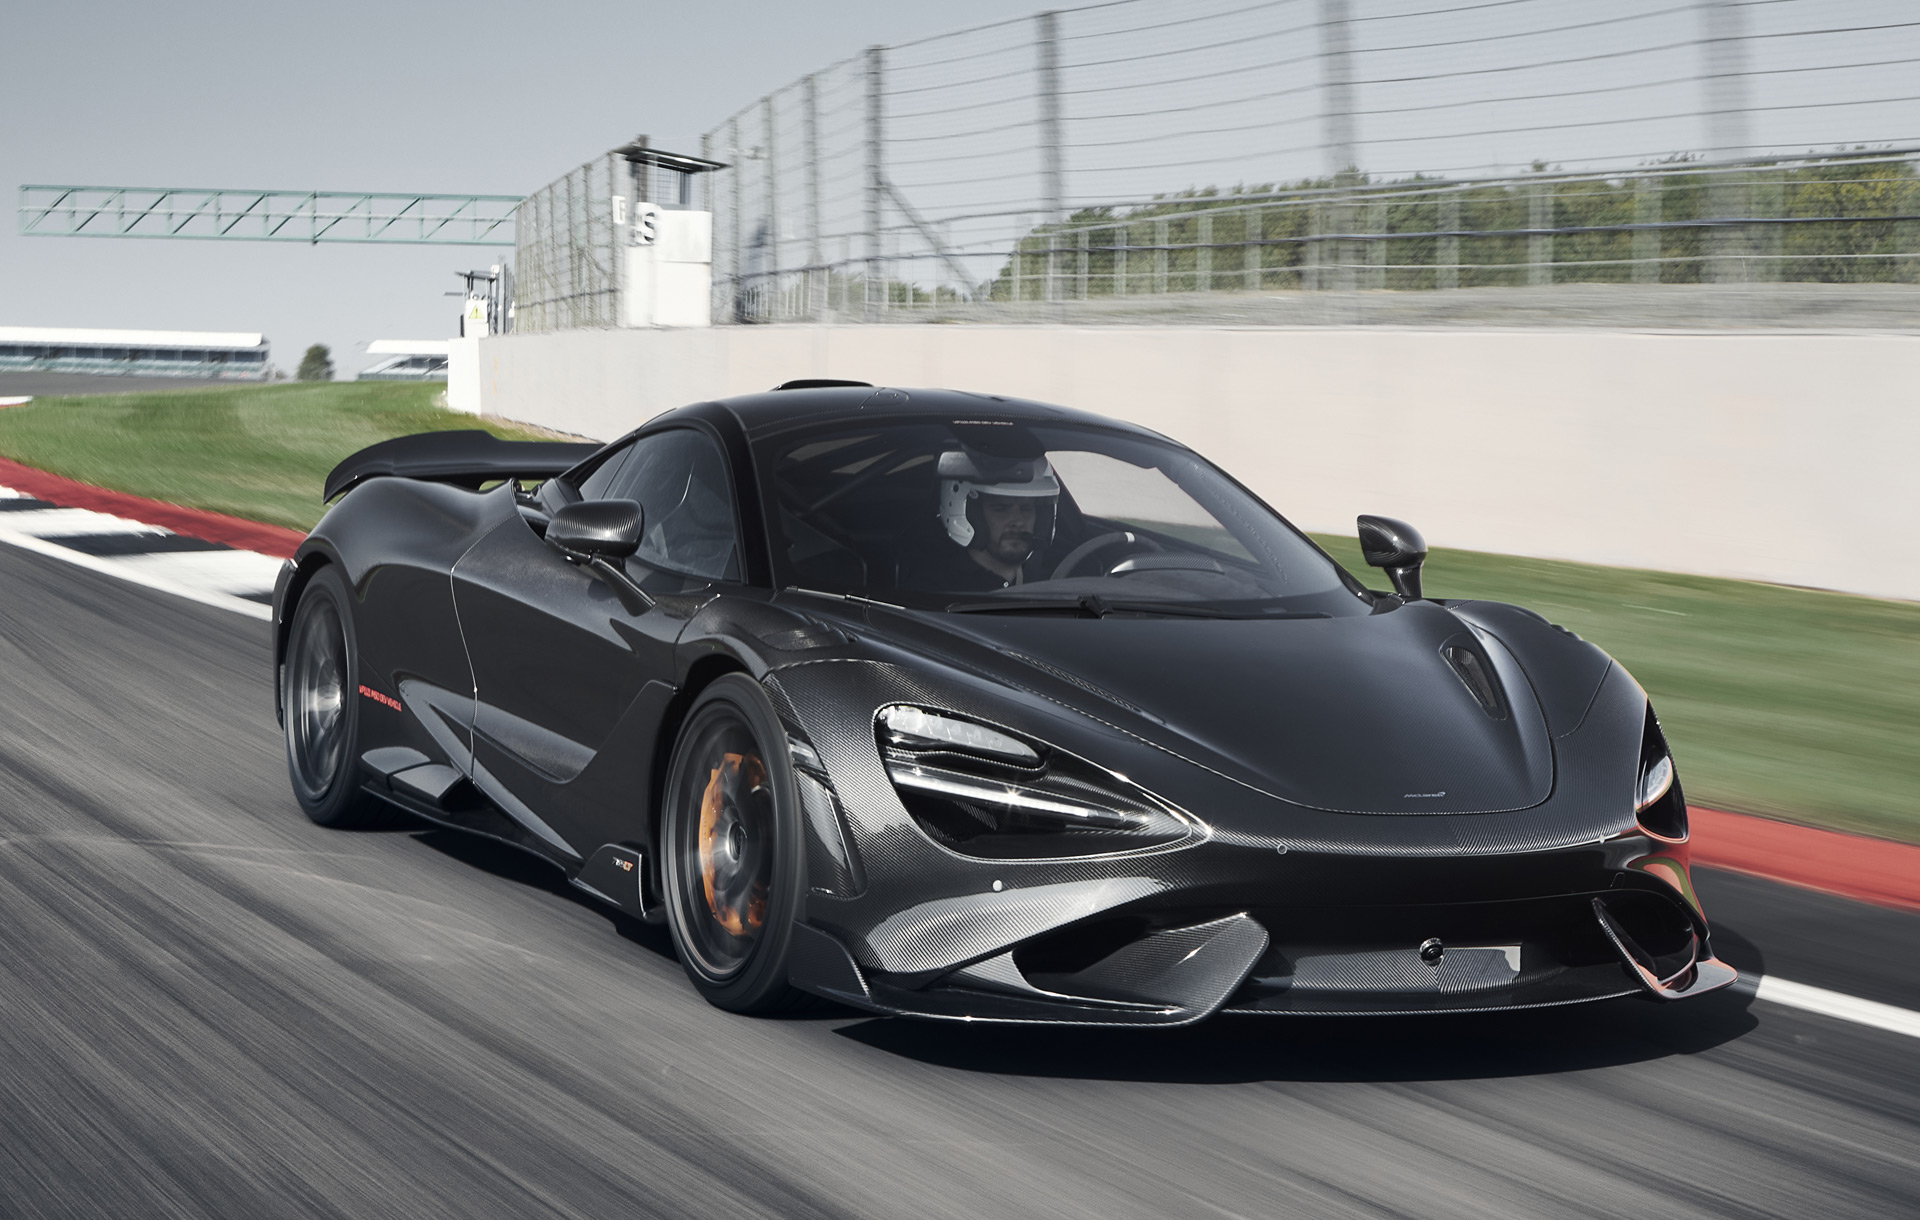 Preview: McLaren 765LT supercar bows with 755 horsepower, $358,000 price tag - Motor Authority